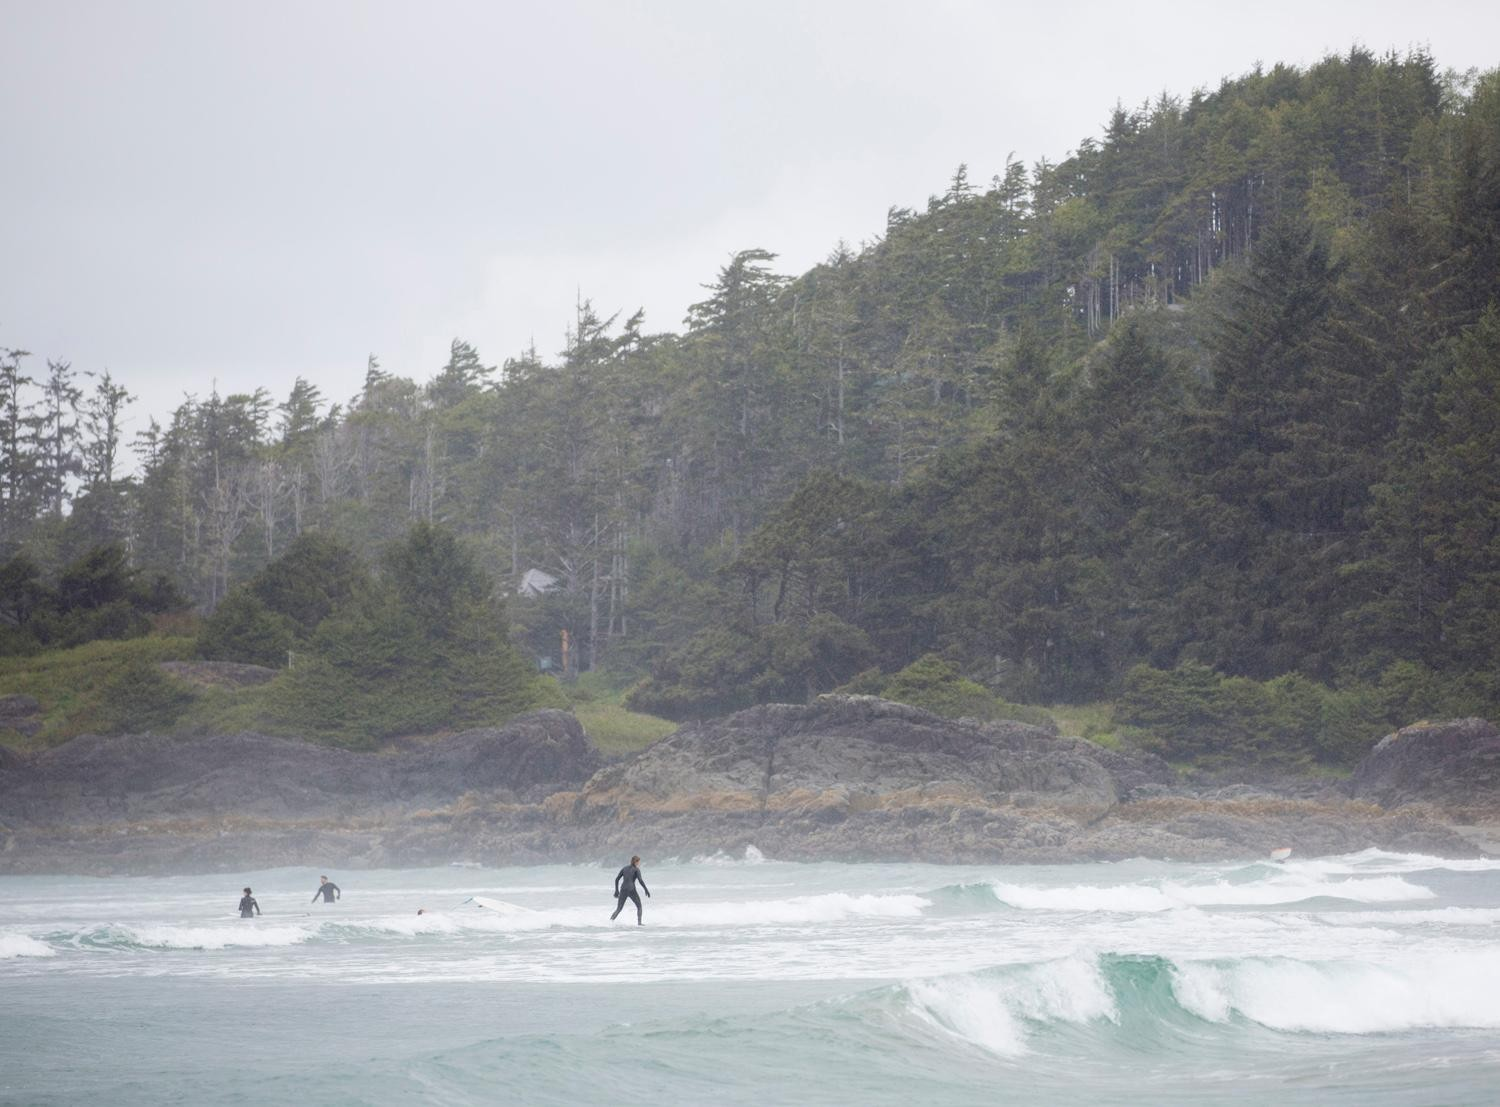 Surfers in Canada are serious - serious enough to don wetsuits and brave the chilly coastal waters to catch some waves. With miles of beach line and several different locations - Tofino, BC, is Canada's surf capital. (Sy Bean / Seattle Refined)